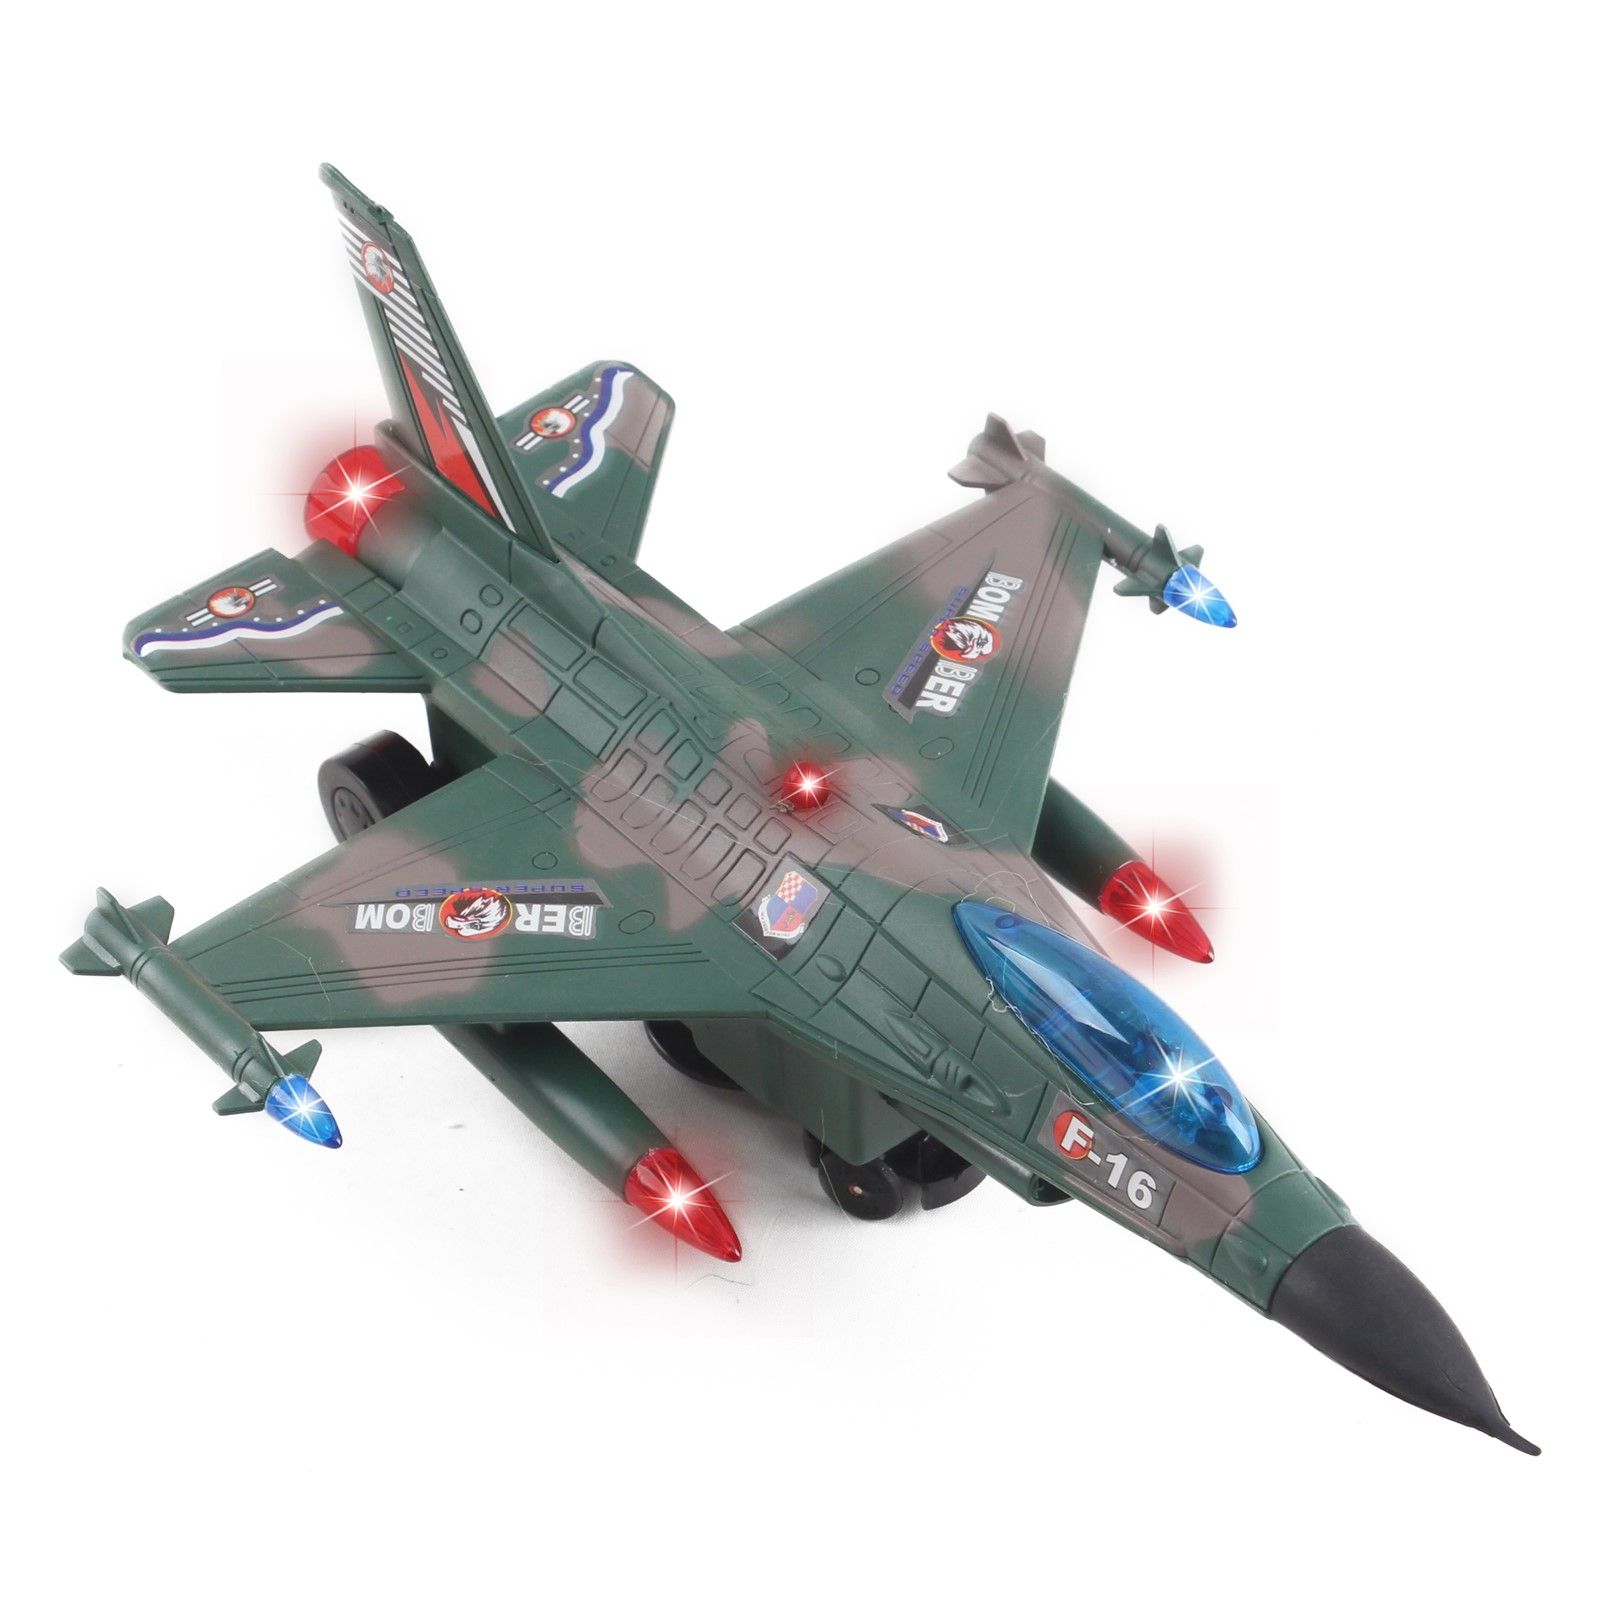 Toy Army Air Force Fighter Jet F16 Battery Operated Kid\'s Bump and Go Toy Plane With Flashing Lights And Sounds Bumps Into Something and Will Change Direction Perfect For Boys And Girls (Green)